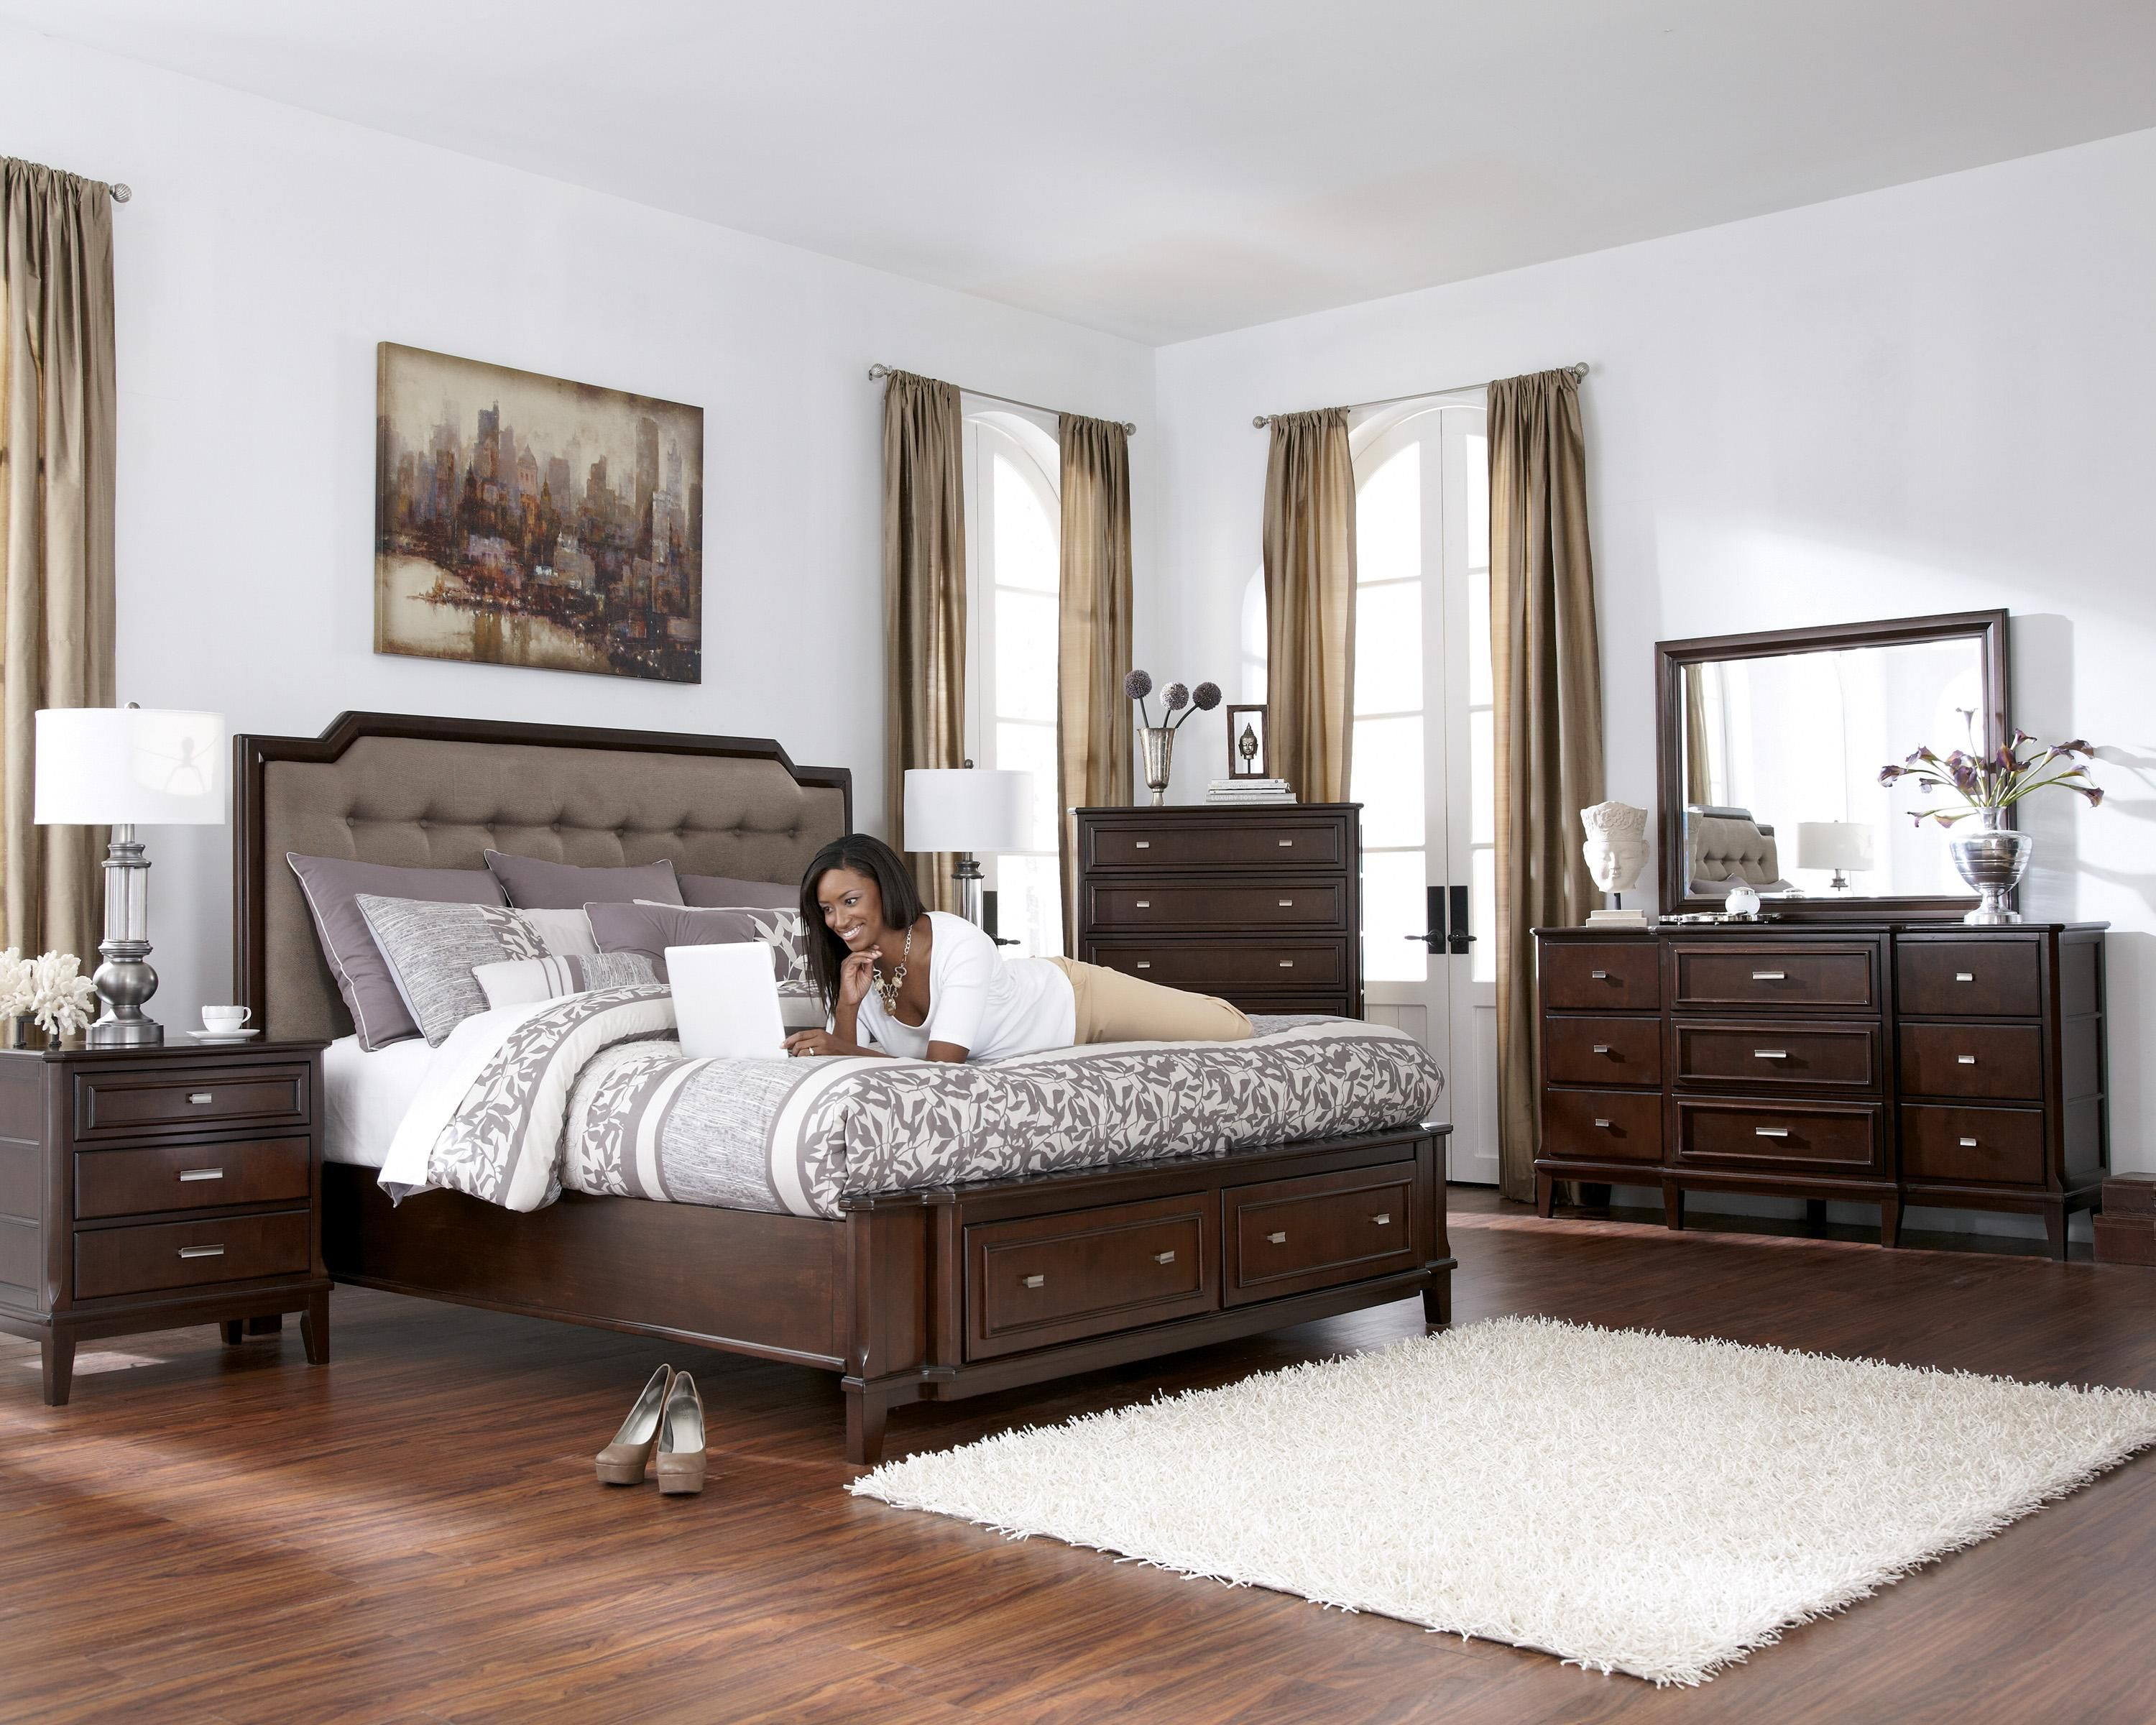 Larimer Upholstered Storage Bedroom Set in Dark Brown  Bedroom